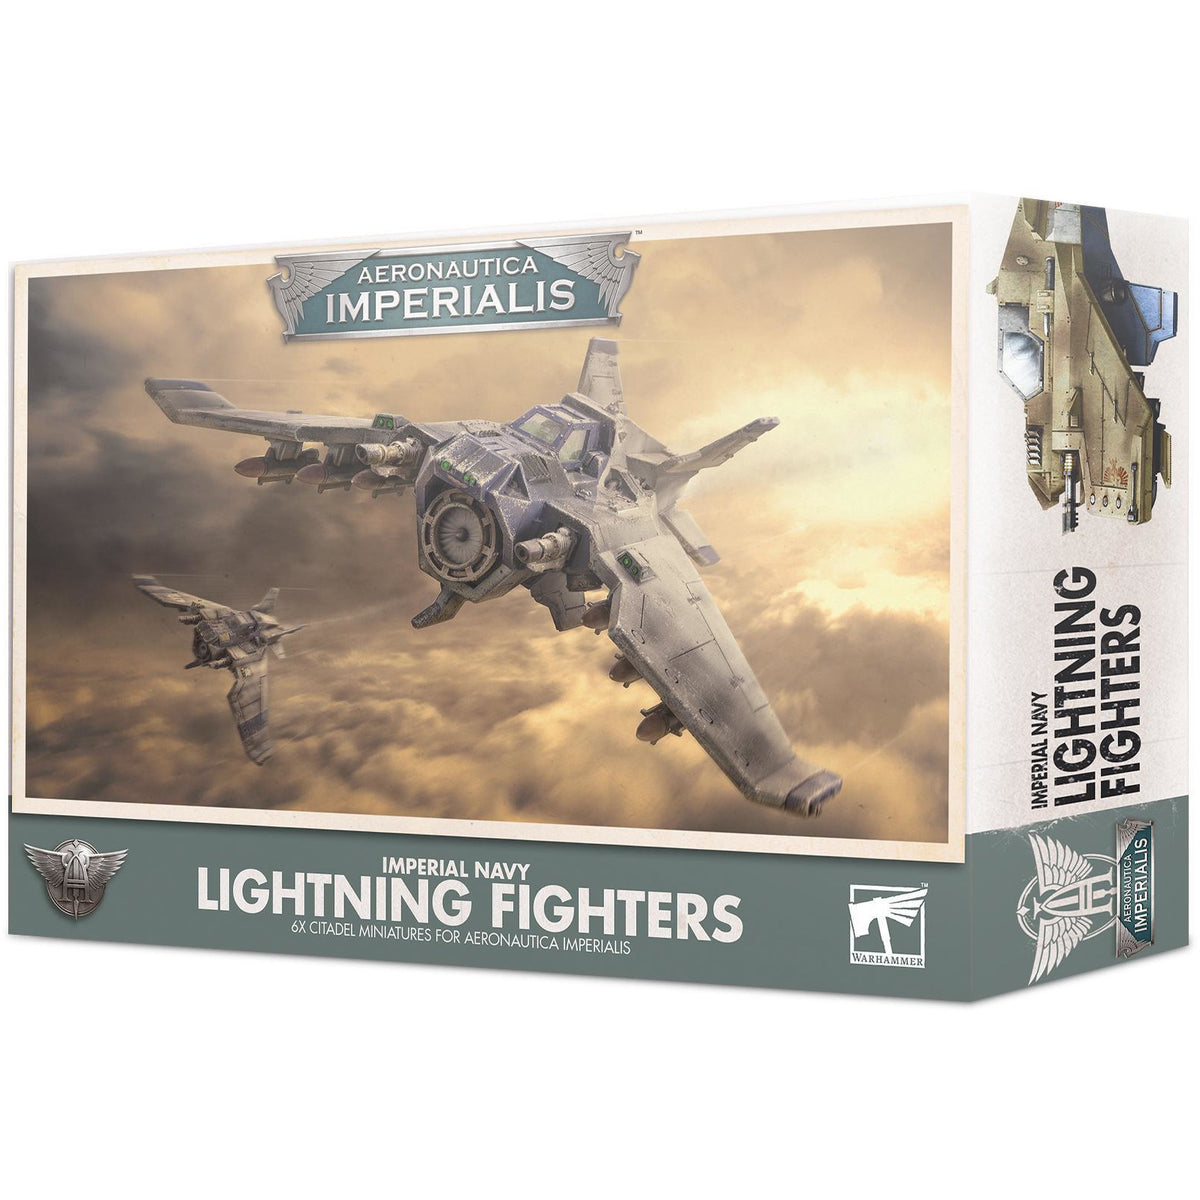 AERONAUTICA IMPERIALIS - IMPERIAL NAVY LIGHTNING FIGHTERS - WARHAMMER 40K